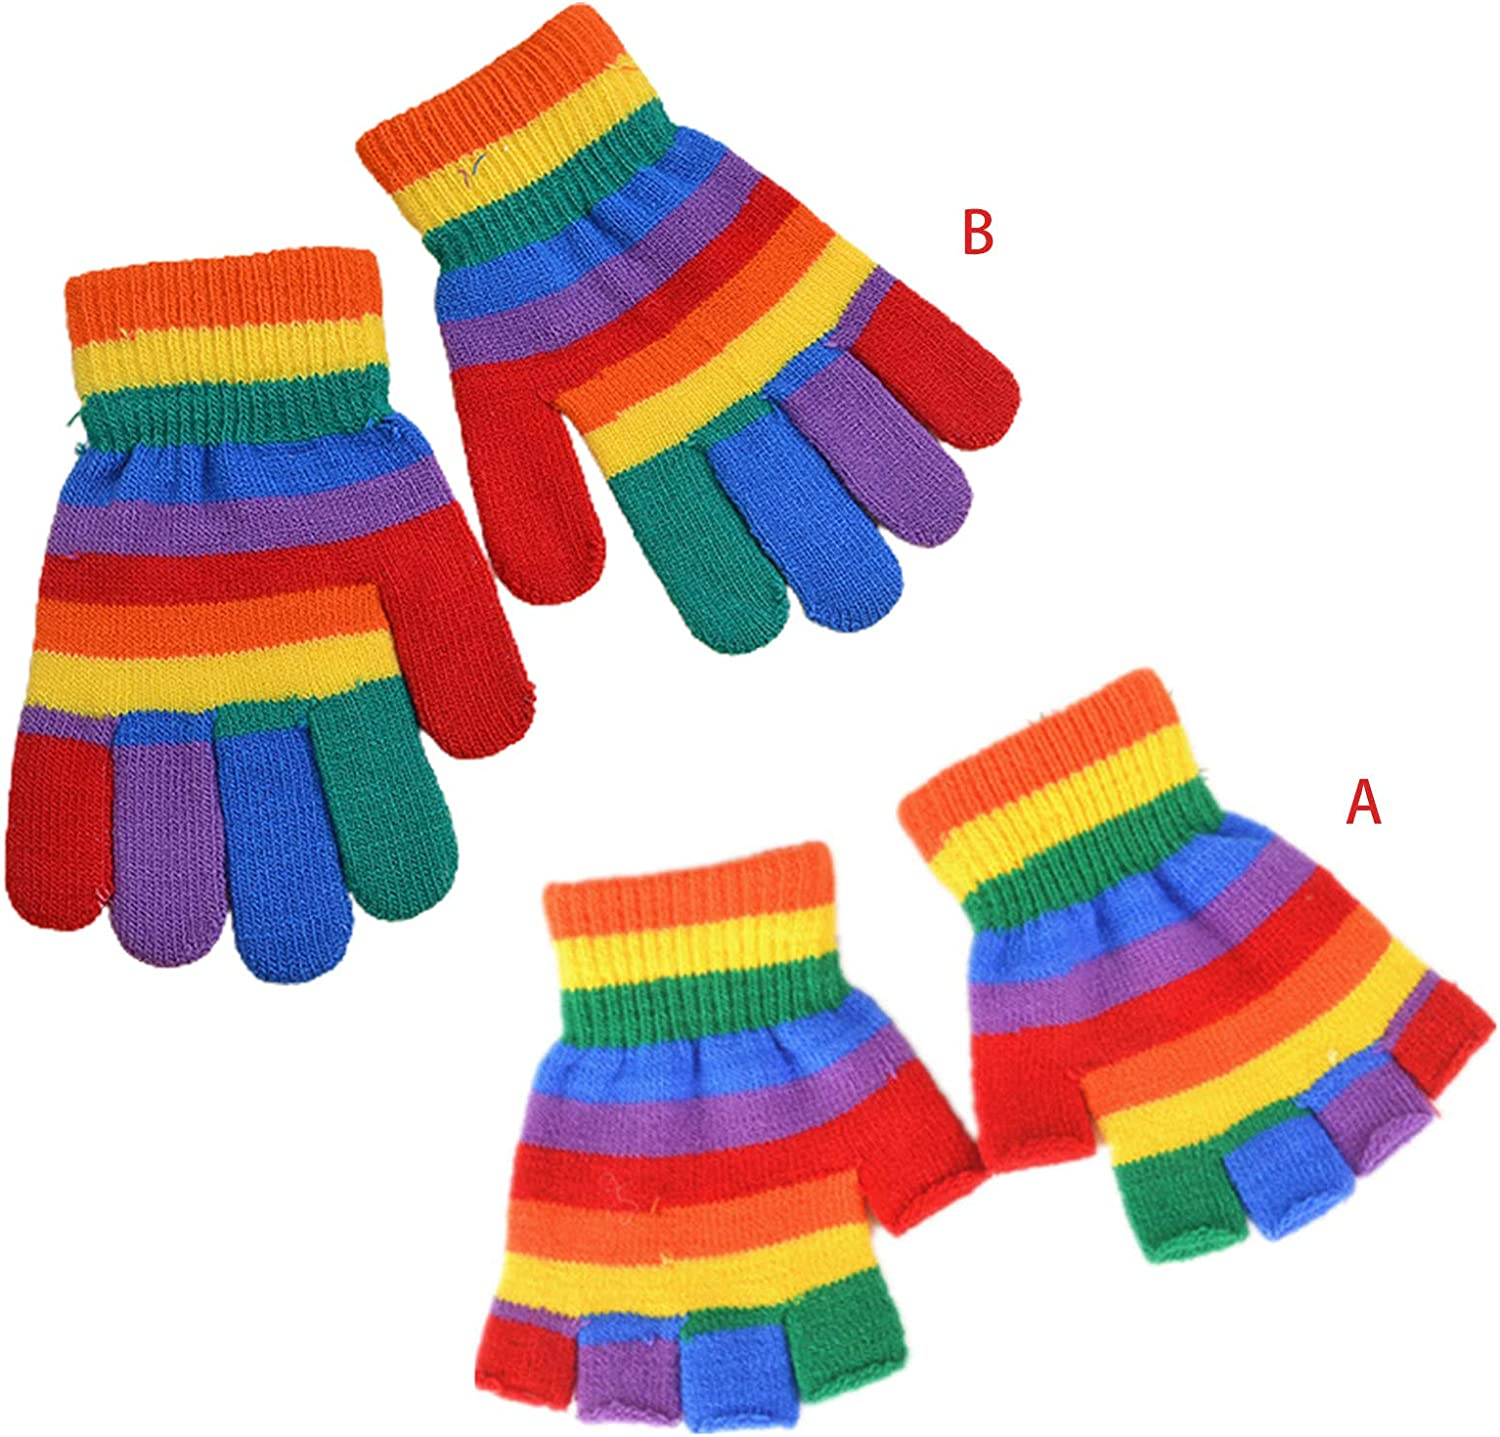 HOT NEW ITEM 3 Pairs Esprit Women/'s Solid and Rainbow Stripes 2-Pack Socks